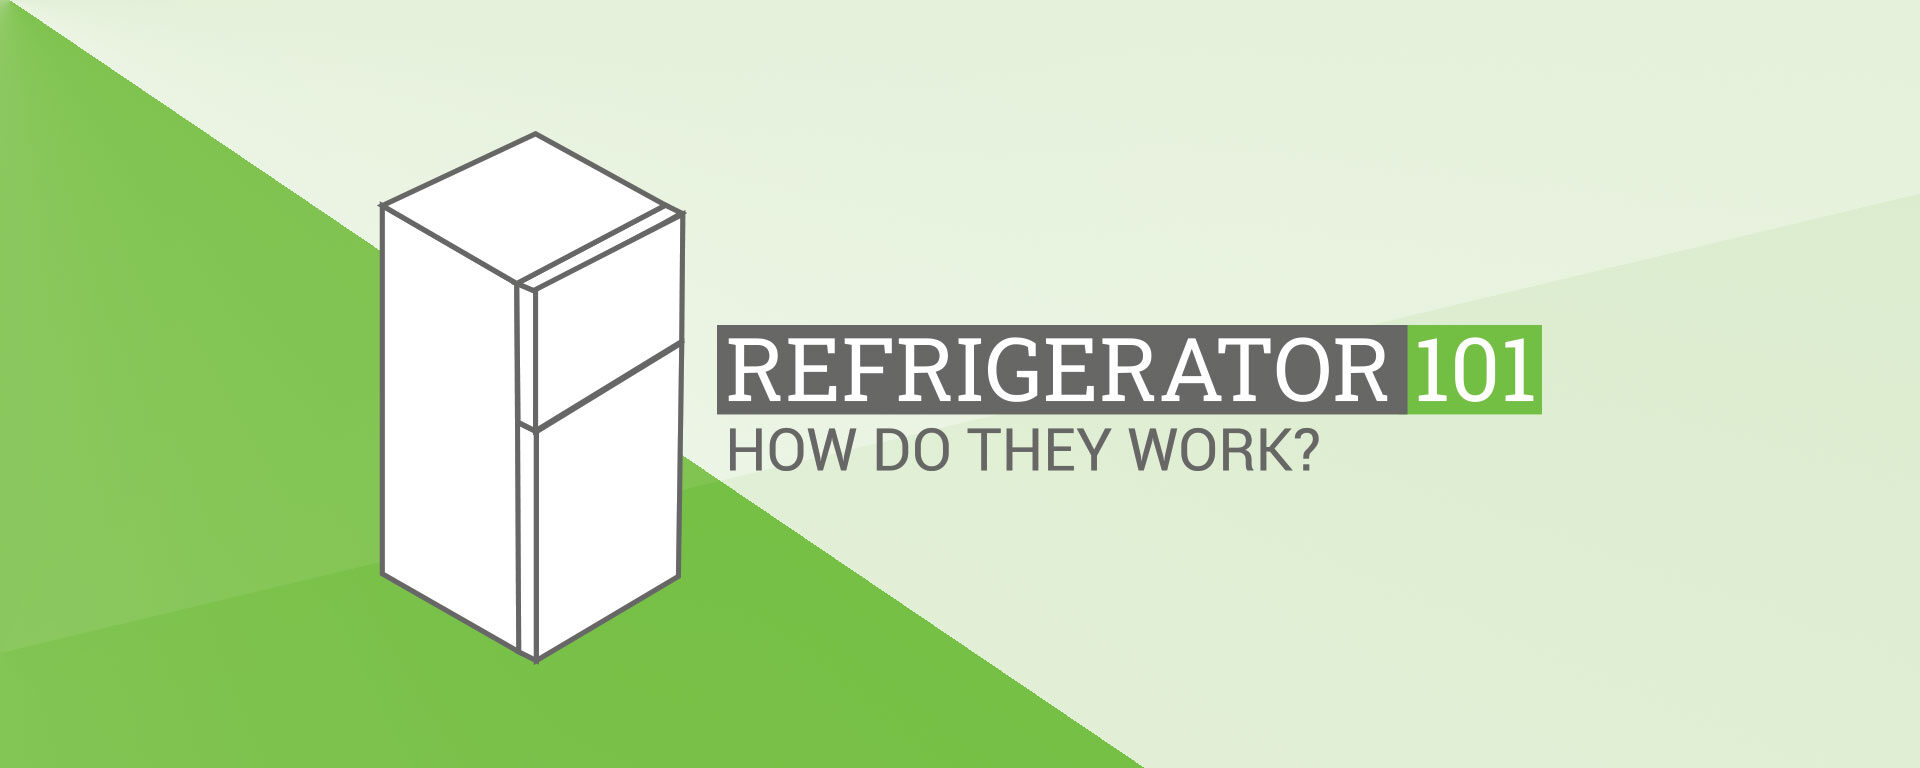 How does a refrigerator work?